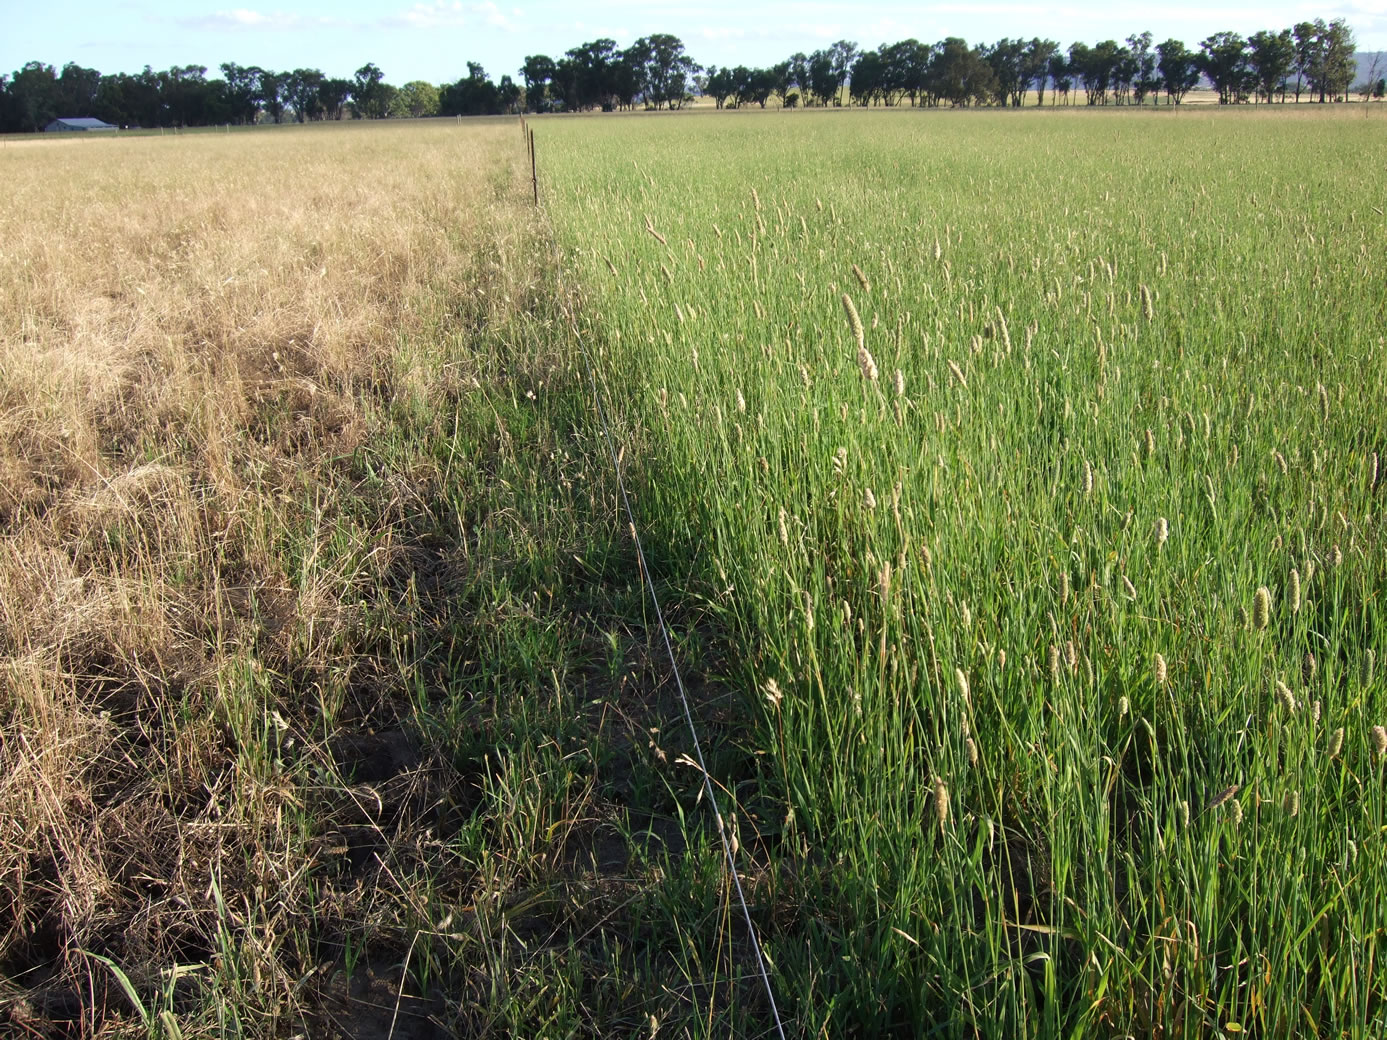 Figure 4. Phalaris thrived in waterlogged environment while Uplands struggled (Nov 2011)